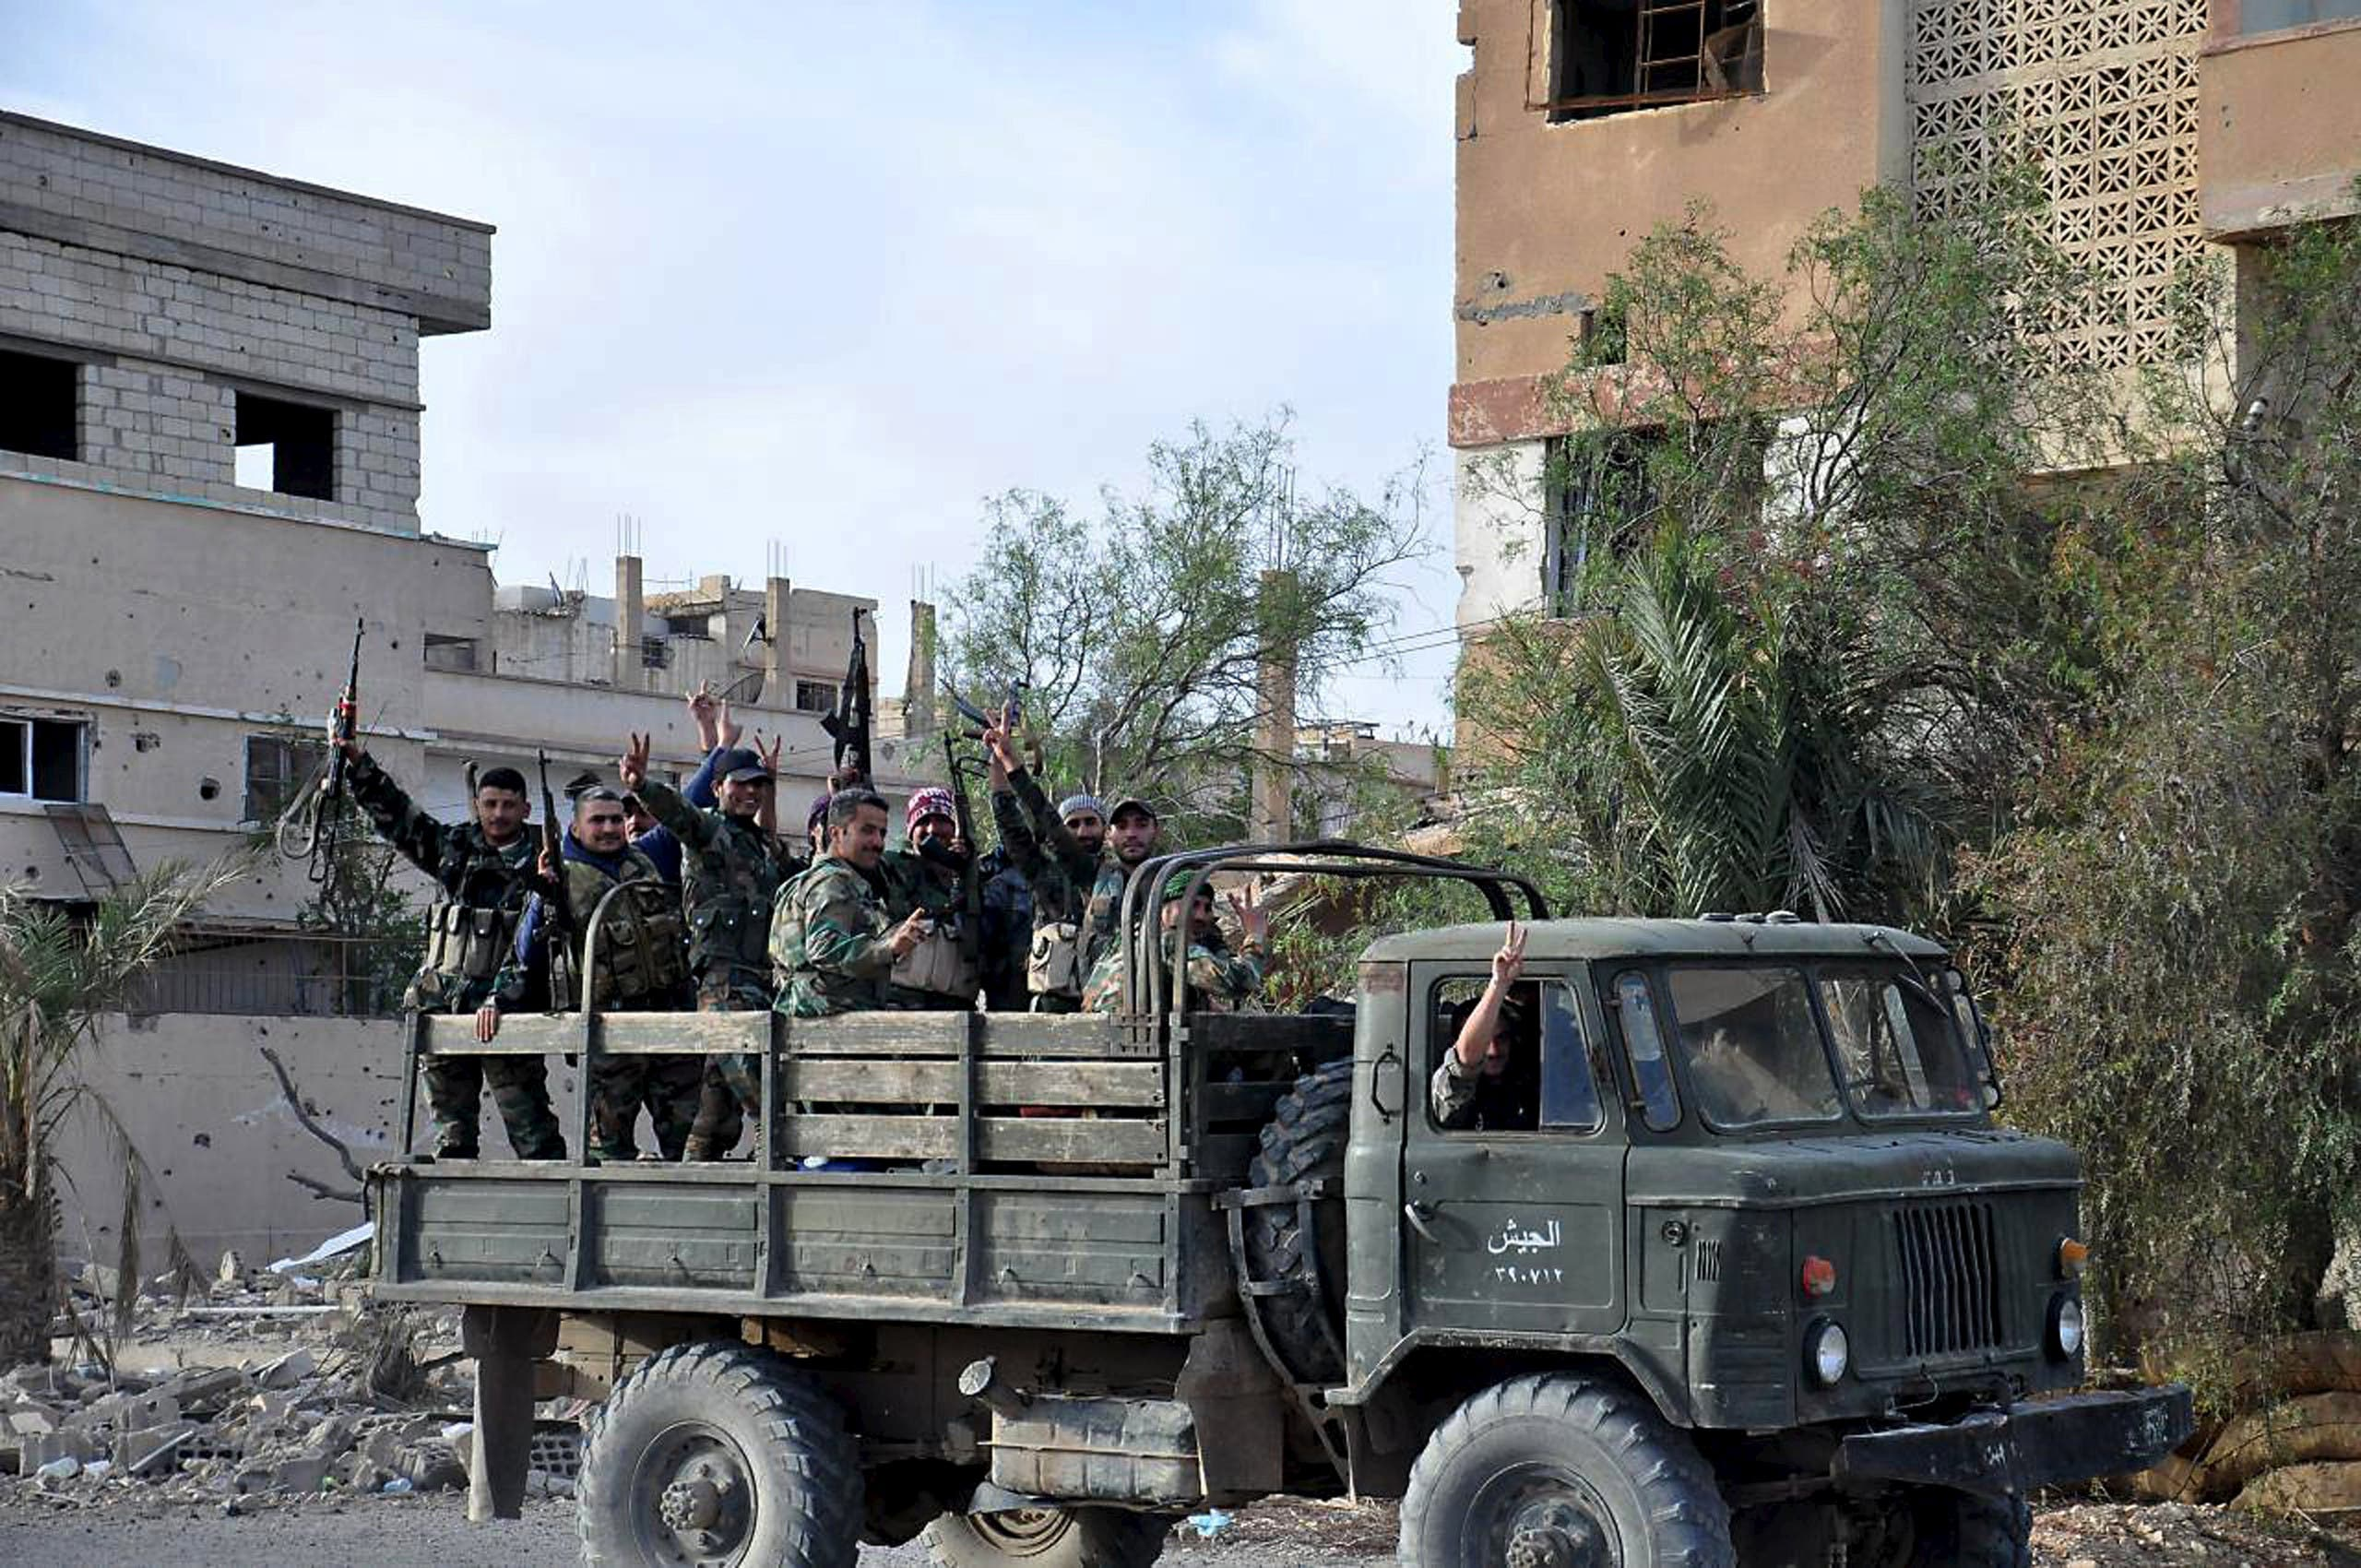 Forces loyal to Syria's President Bashar al-Assad flash victory signs while riding on the back of a military truck in Palmyra city, in Homs Governorate on March 27, 2016. (Photo courtesy: SANA)